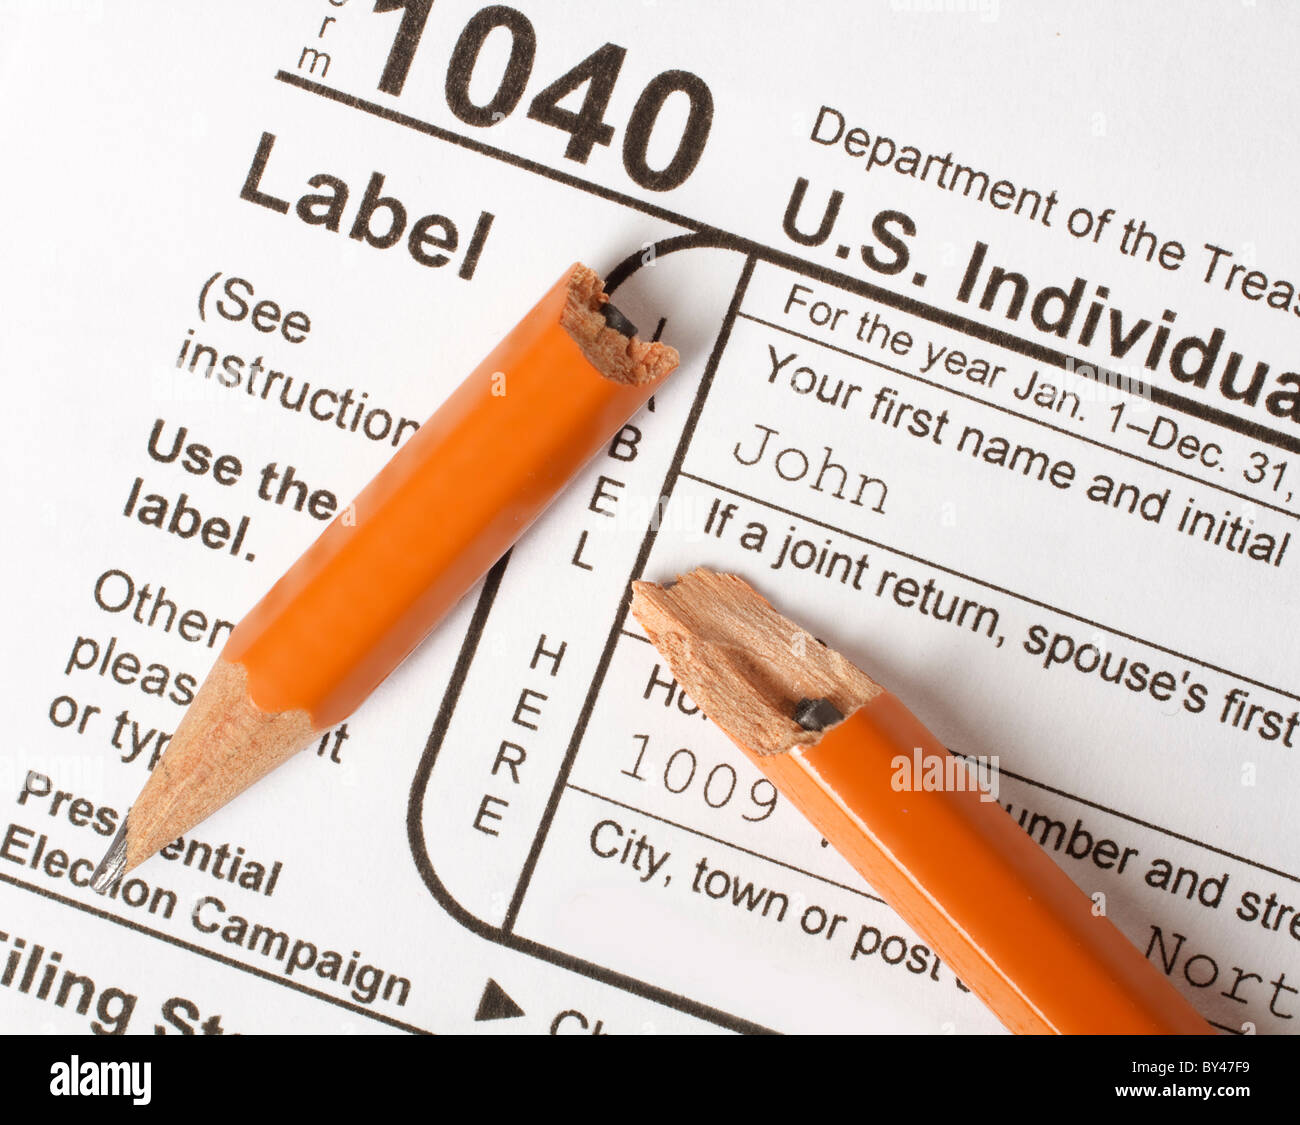 Broken pencil on a Federal 1040 Tax form illustrating the concept of taxpayer frustration and anger. - Stock Image